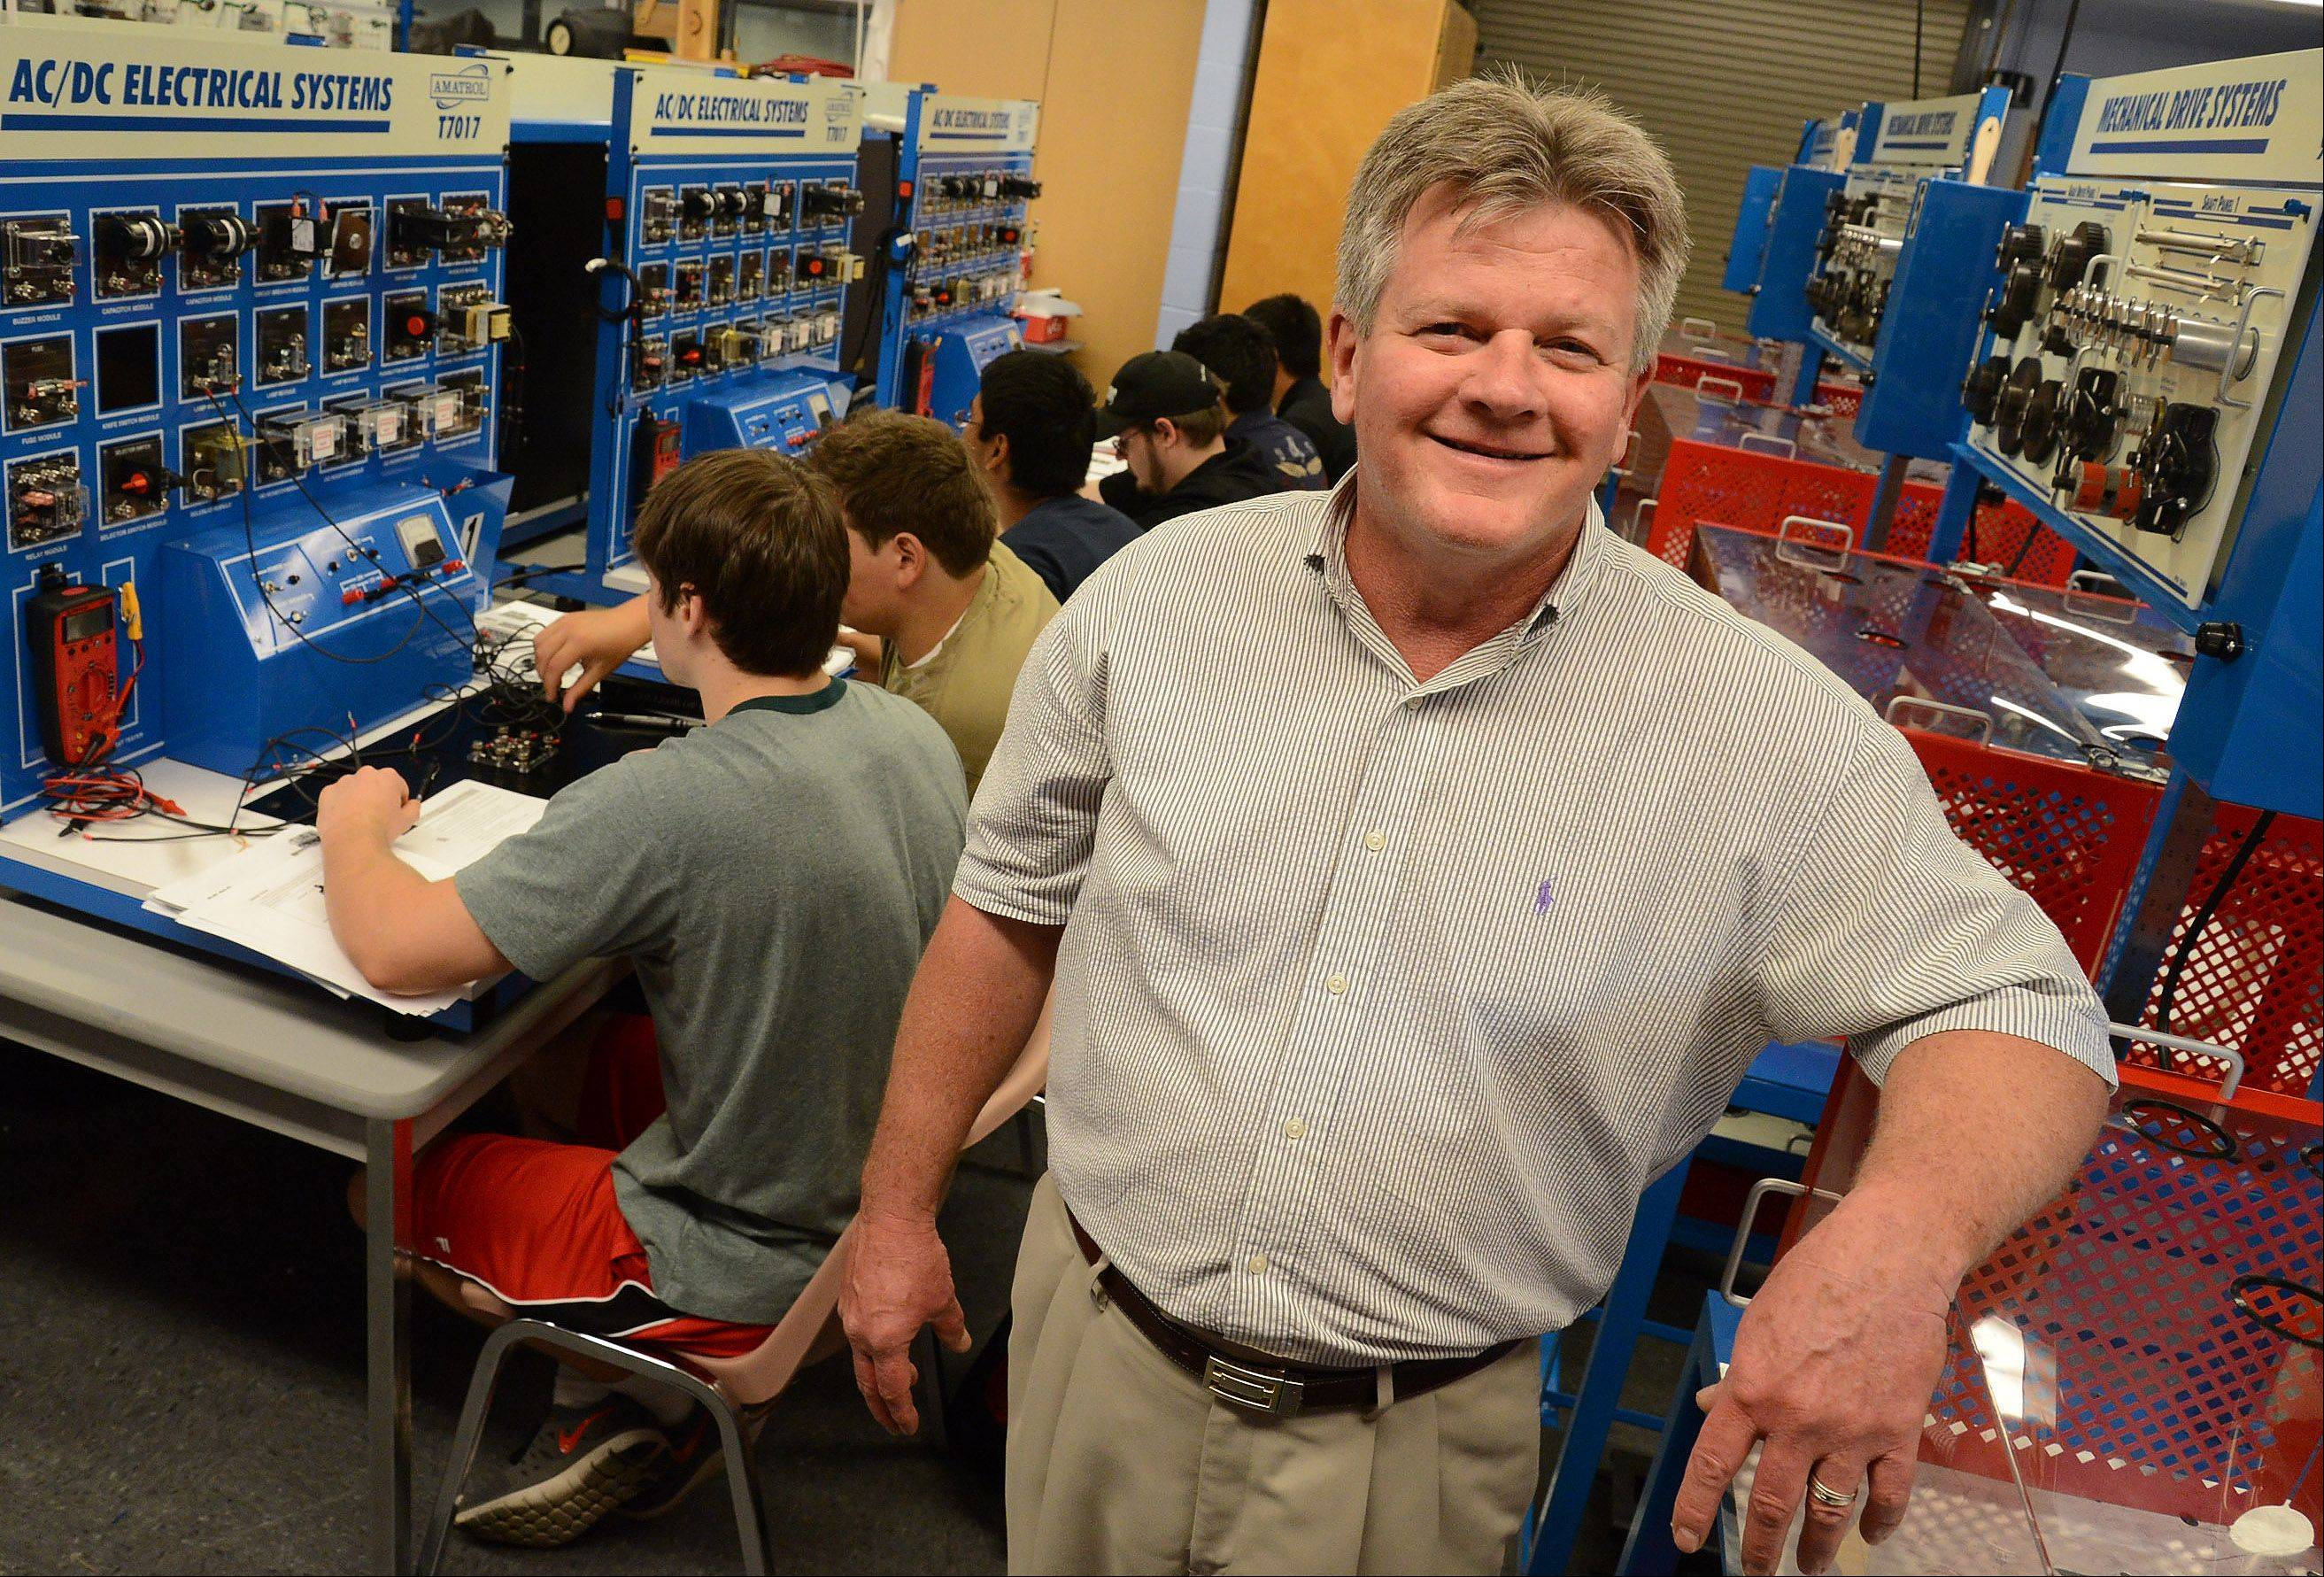 Mechatronics is a new manufacturing-based curriculum at College of Lake County. Dean Emeritus Gary Morgan explains the new field combining mechanics, electronics and software.